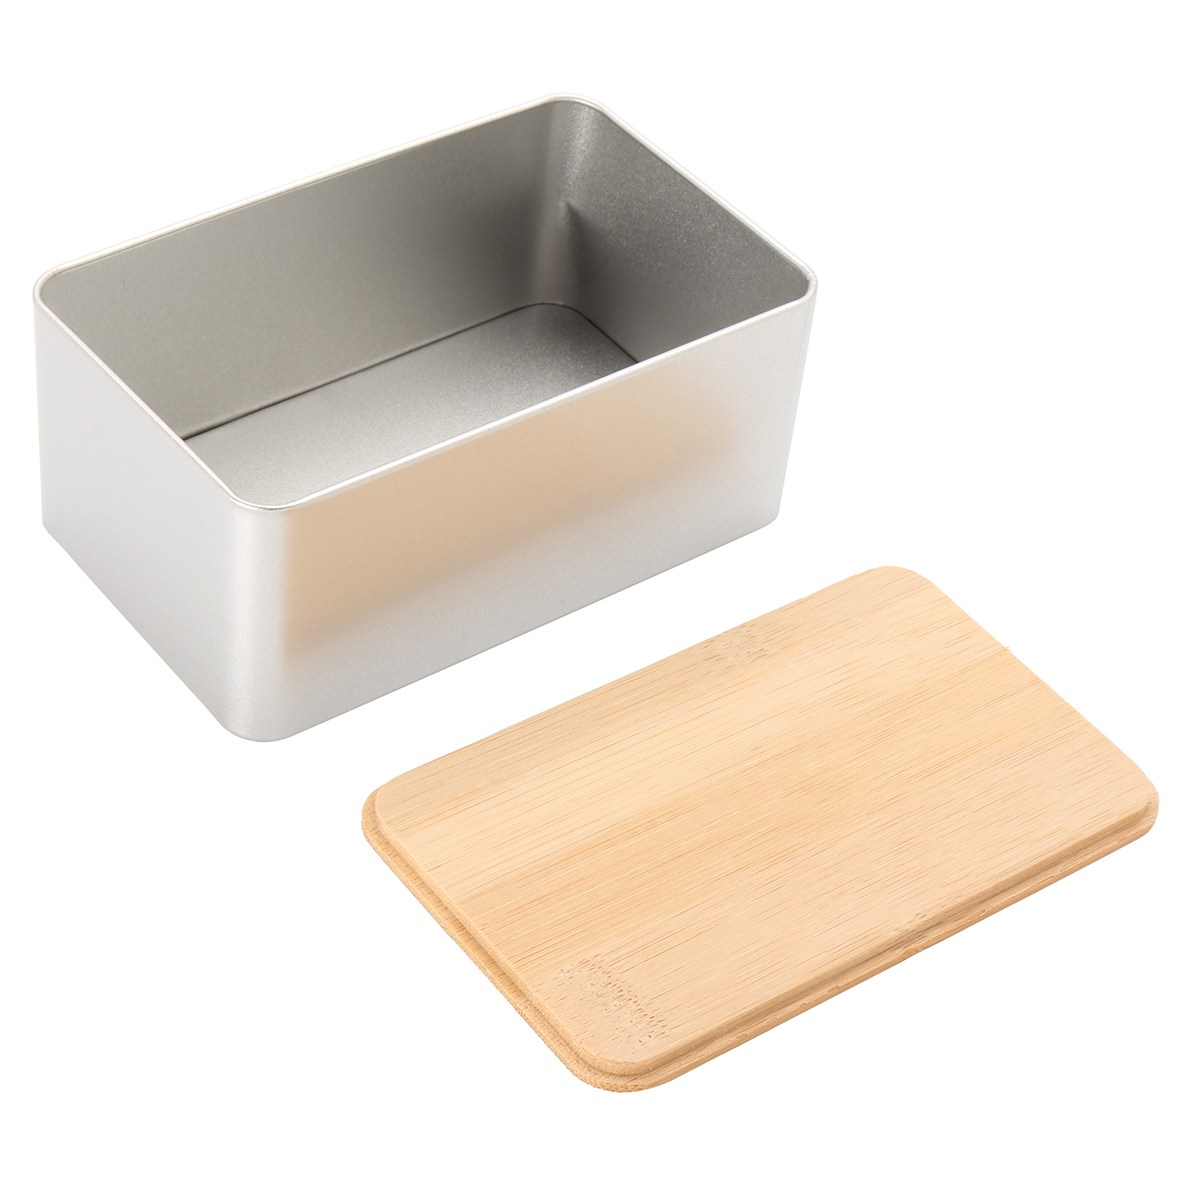 Kitchen Metal Storage Box With Bamboo Lid Bins Bread Sugar Boxes Tea Herb Stoarge Holder Food Containers Organizer Supplies 1